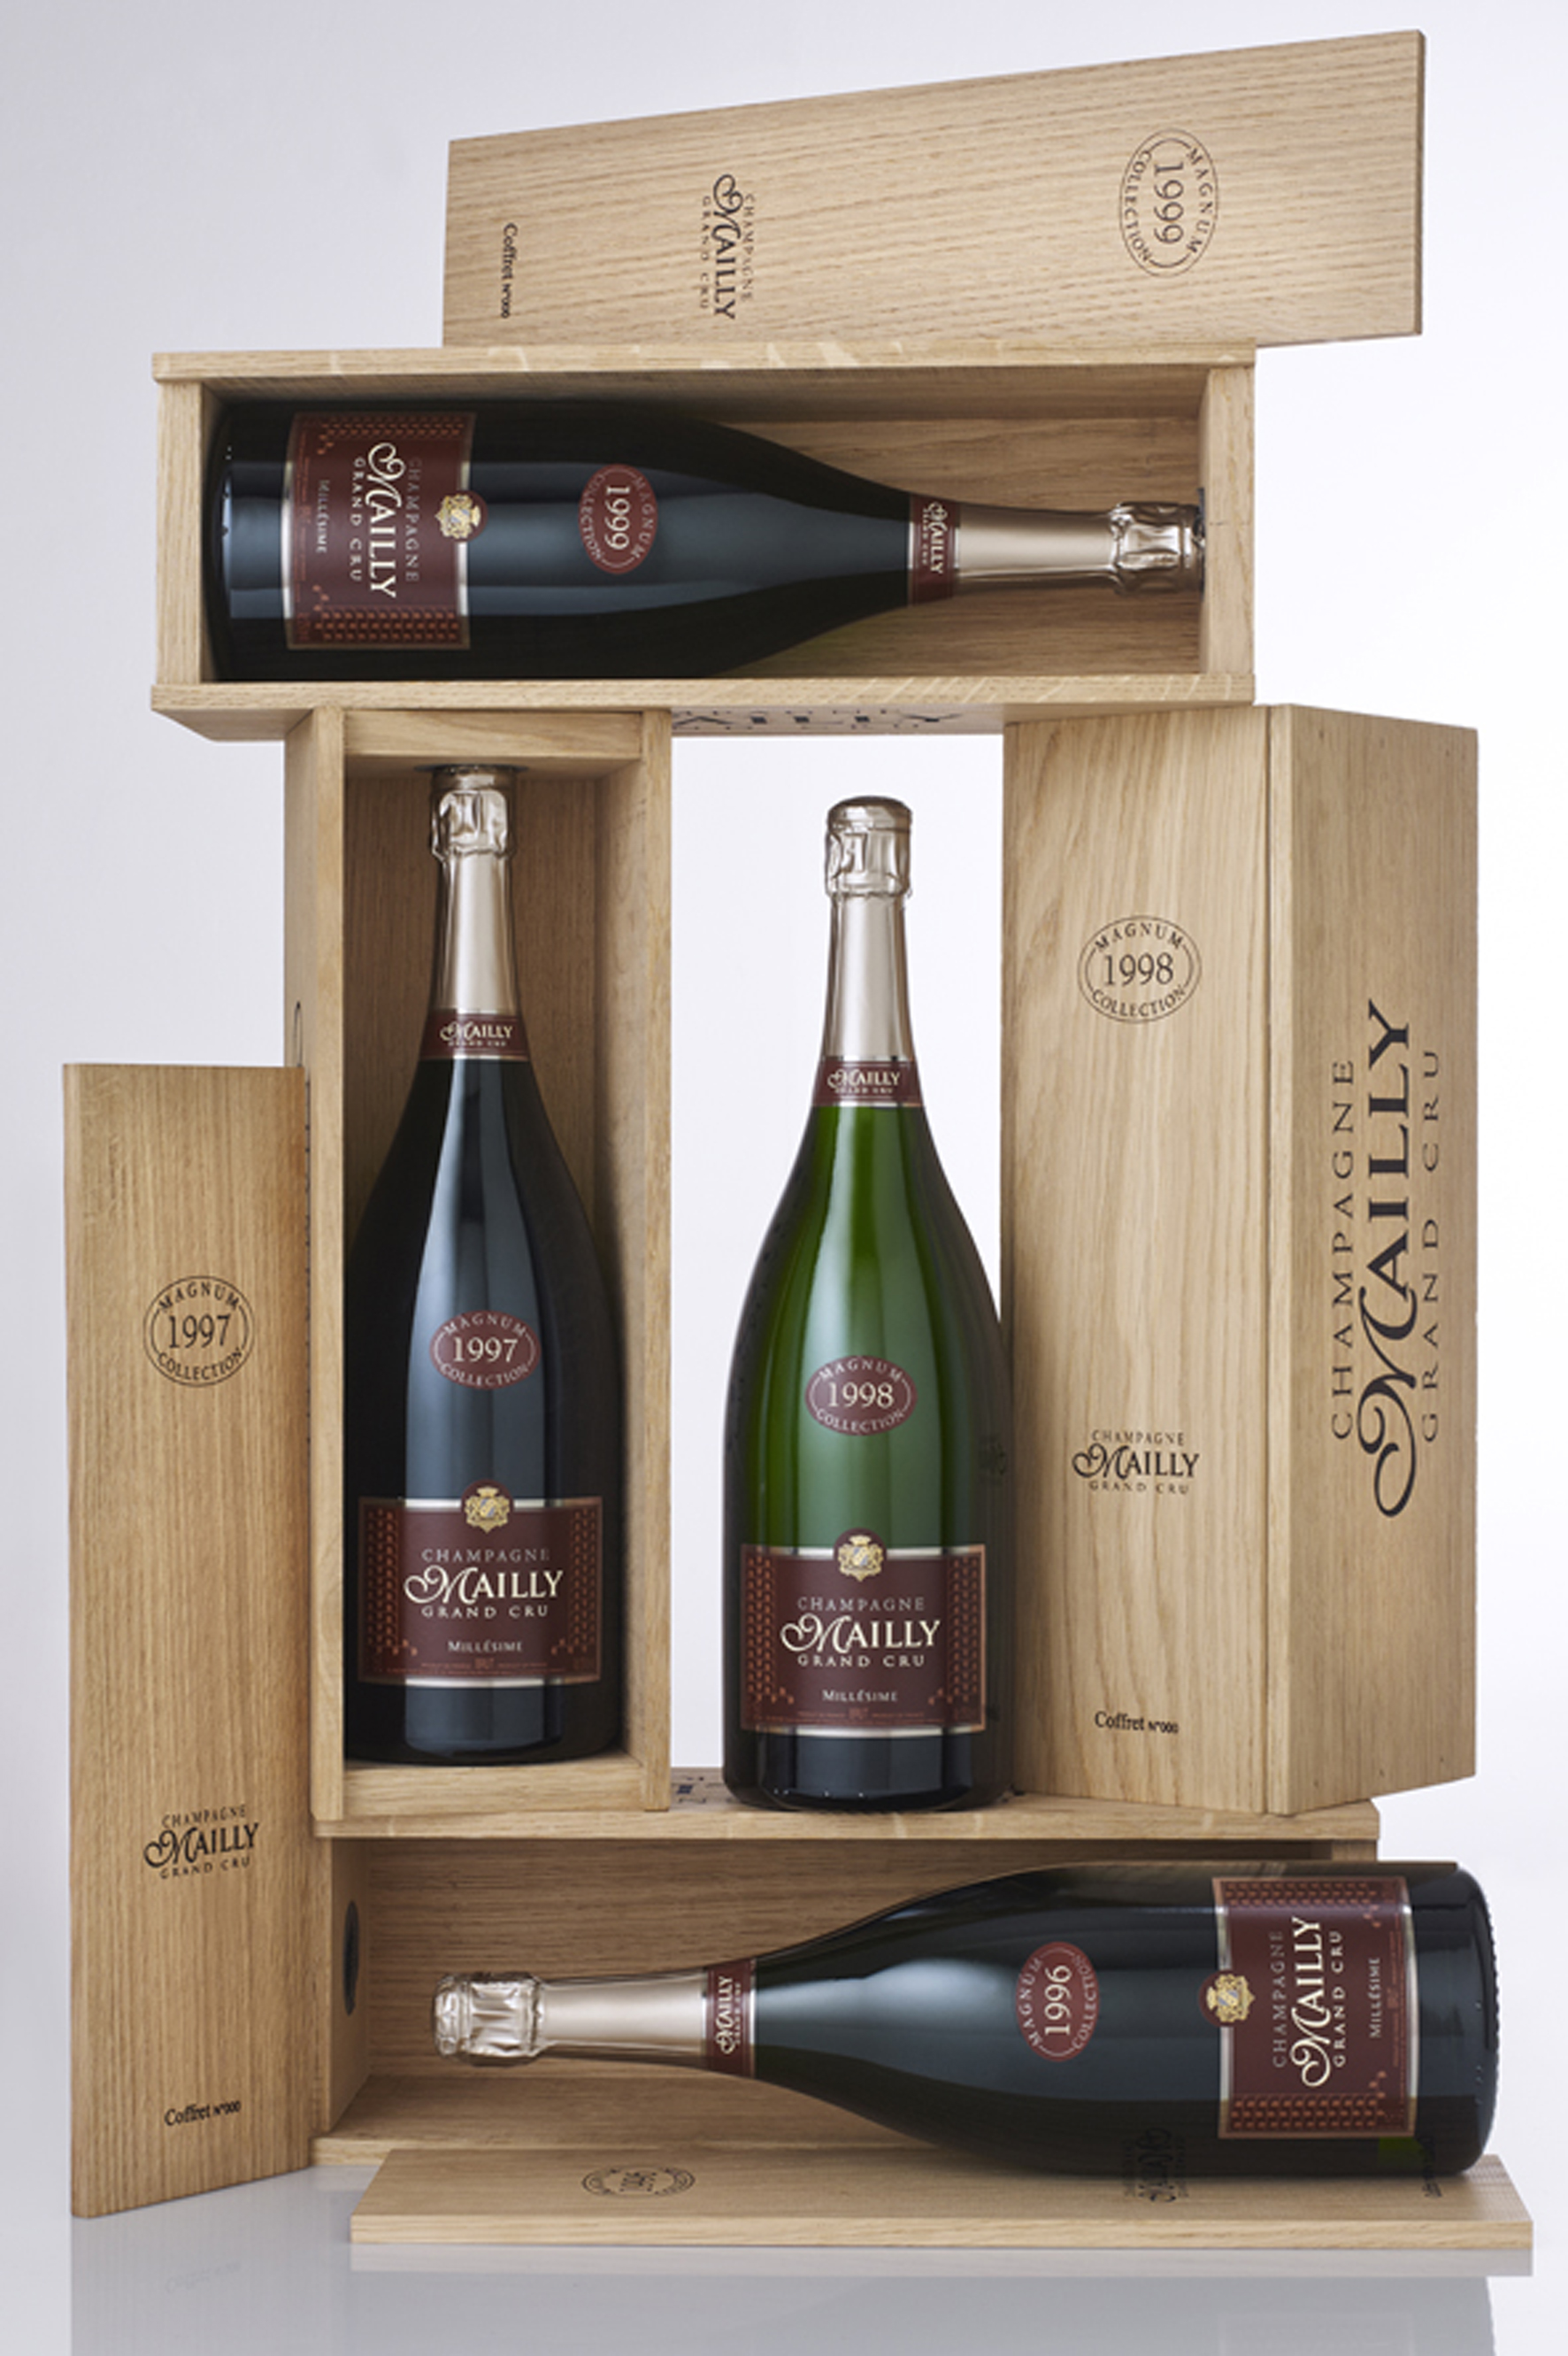 Mailly Grand Cru Magnum Collection Millesimes